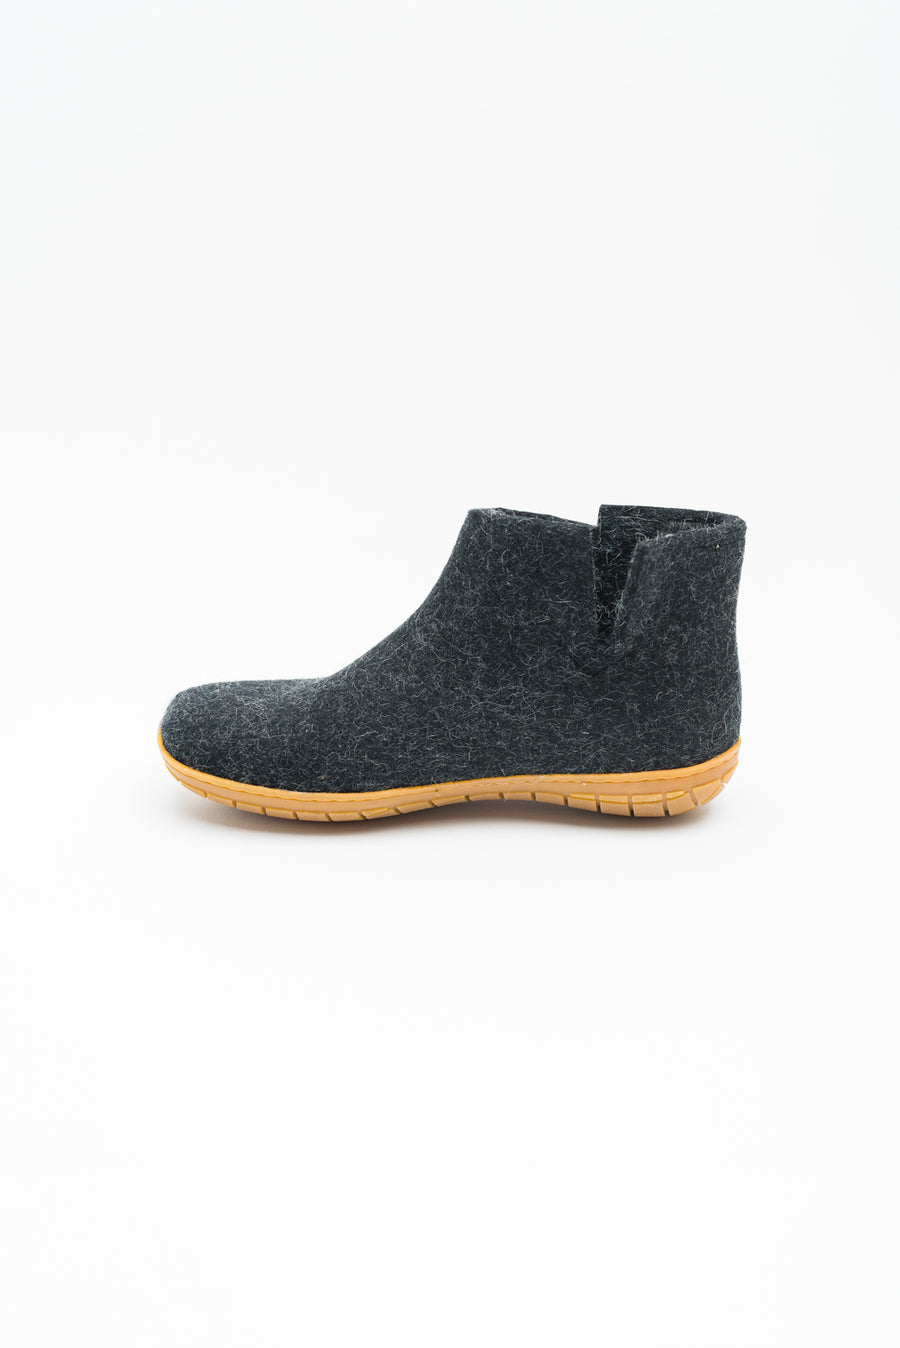 Low Boot with Rubber Sole - Charcoal